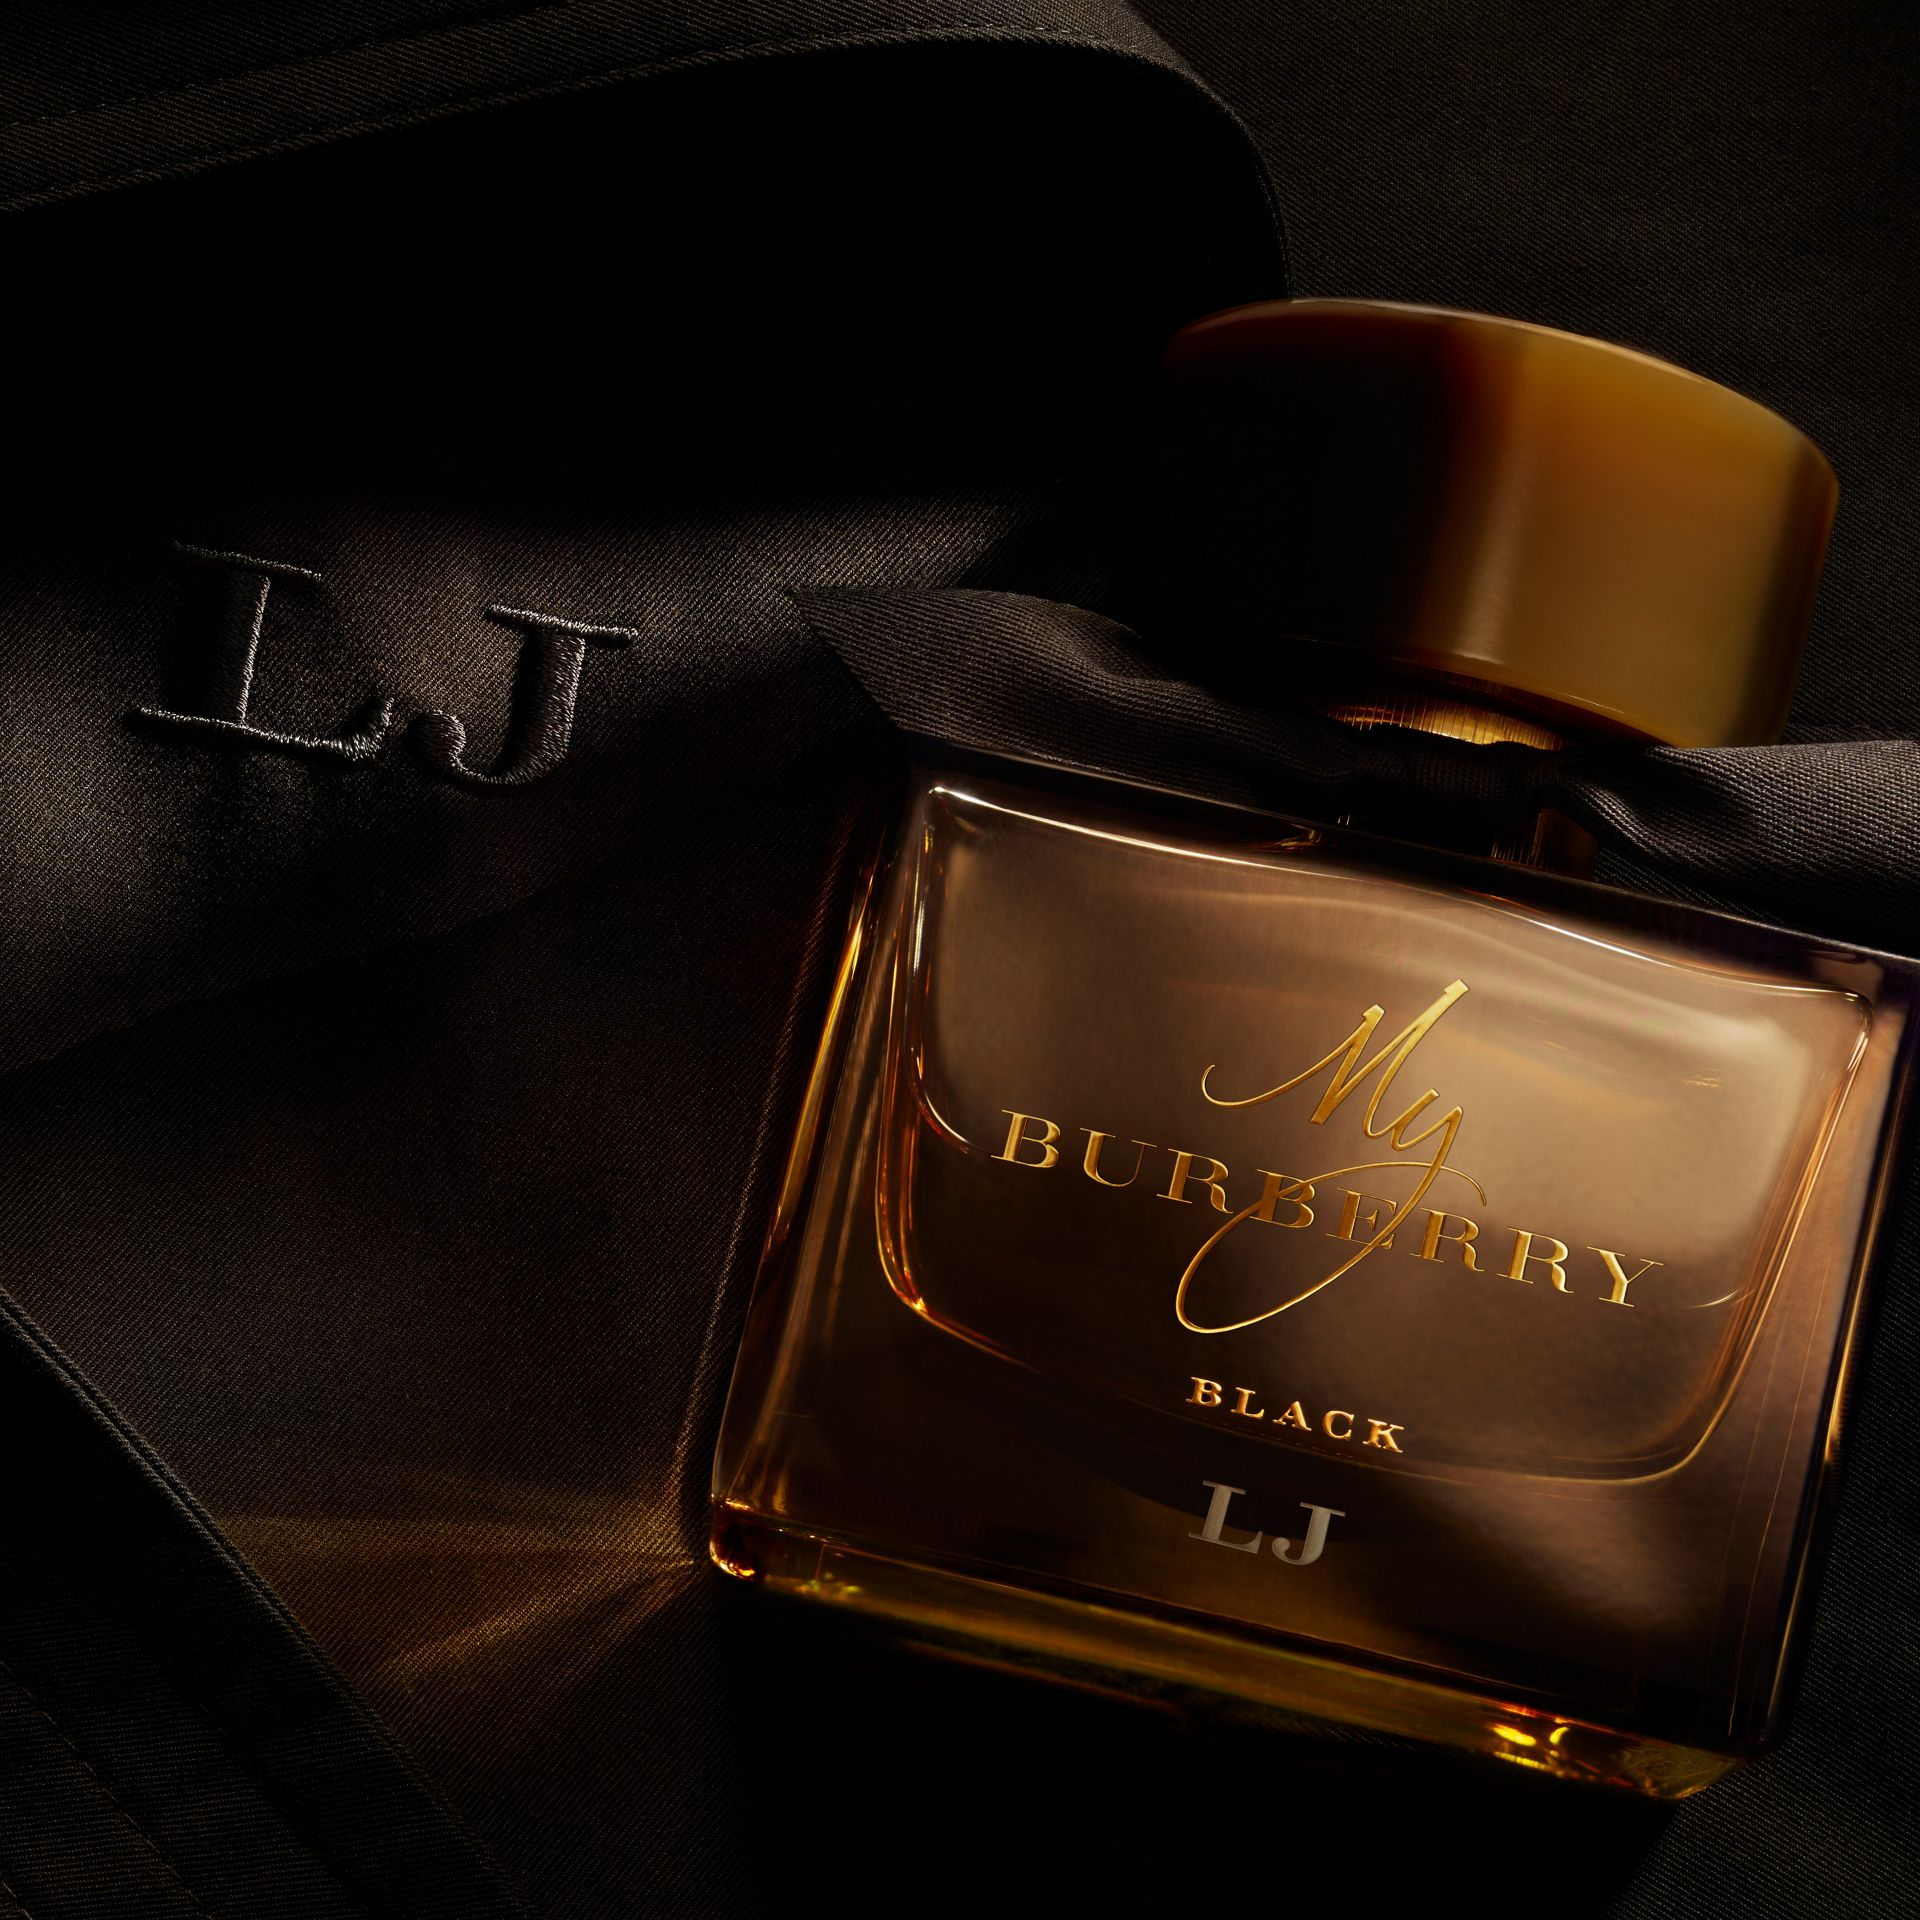 My Burberry Black Parfum 30ml - gallery image 5